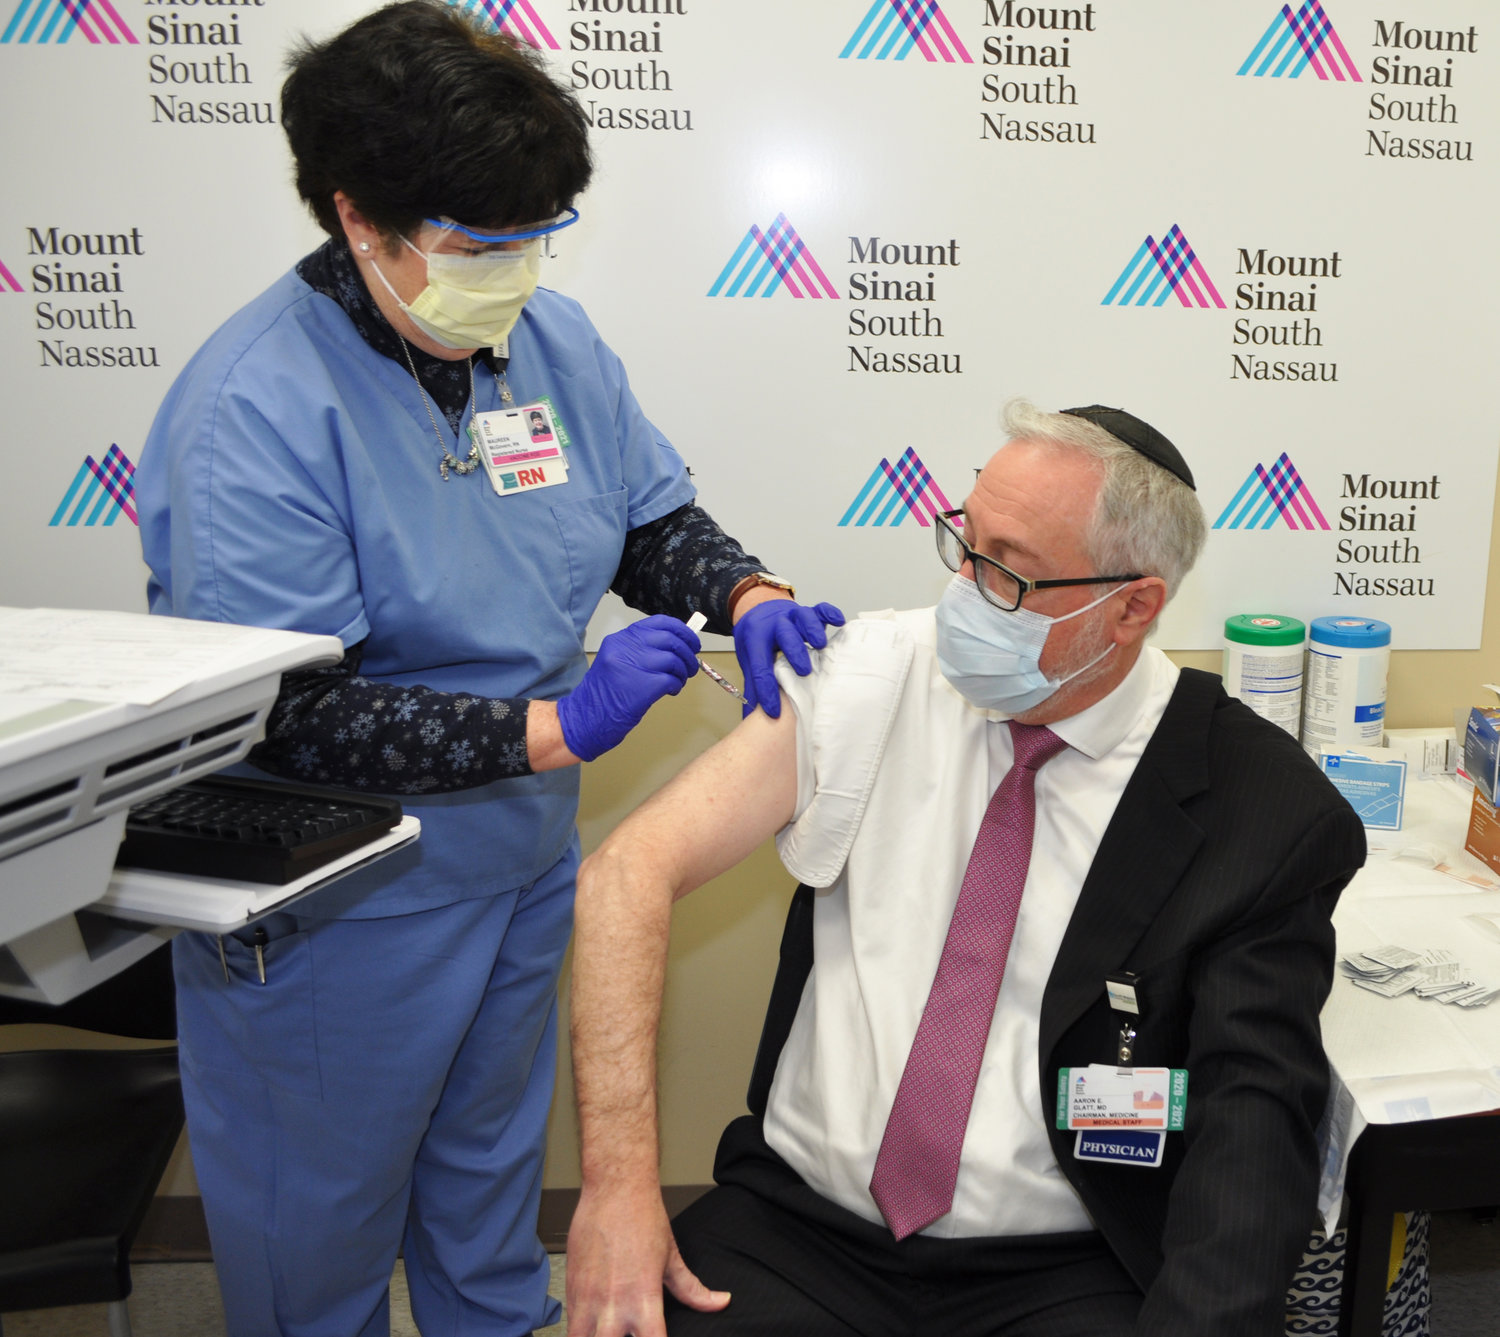 Dr. Aaron E. Glatt, chairman of the Department of Medicine and chief of infectious diseases at Mount Sinai South Nassau, received the second dose of the Covid-19 vaccine from retired Nurse Maureen McGovern.